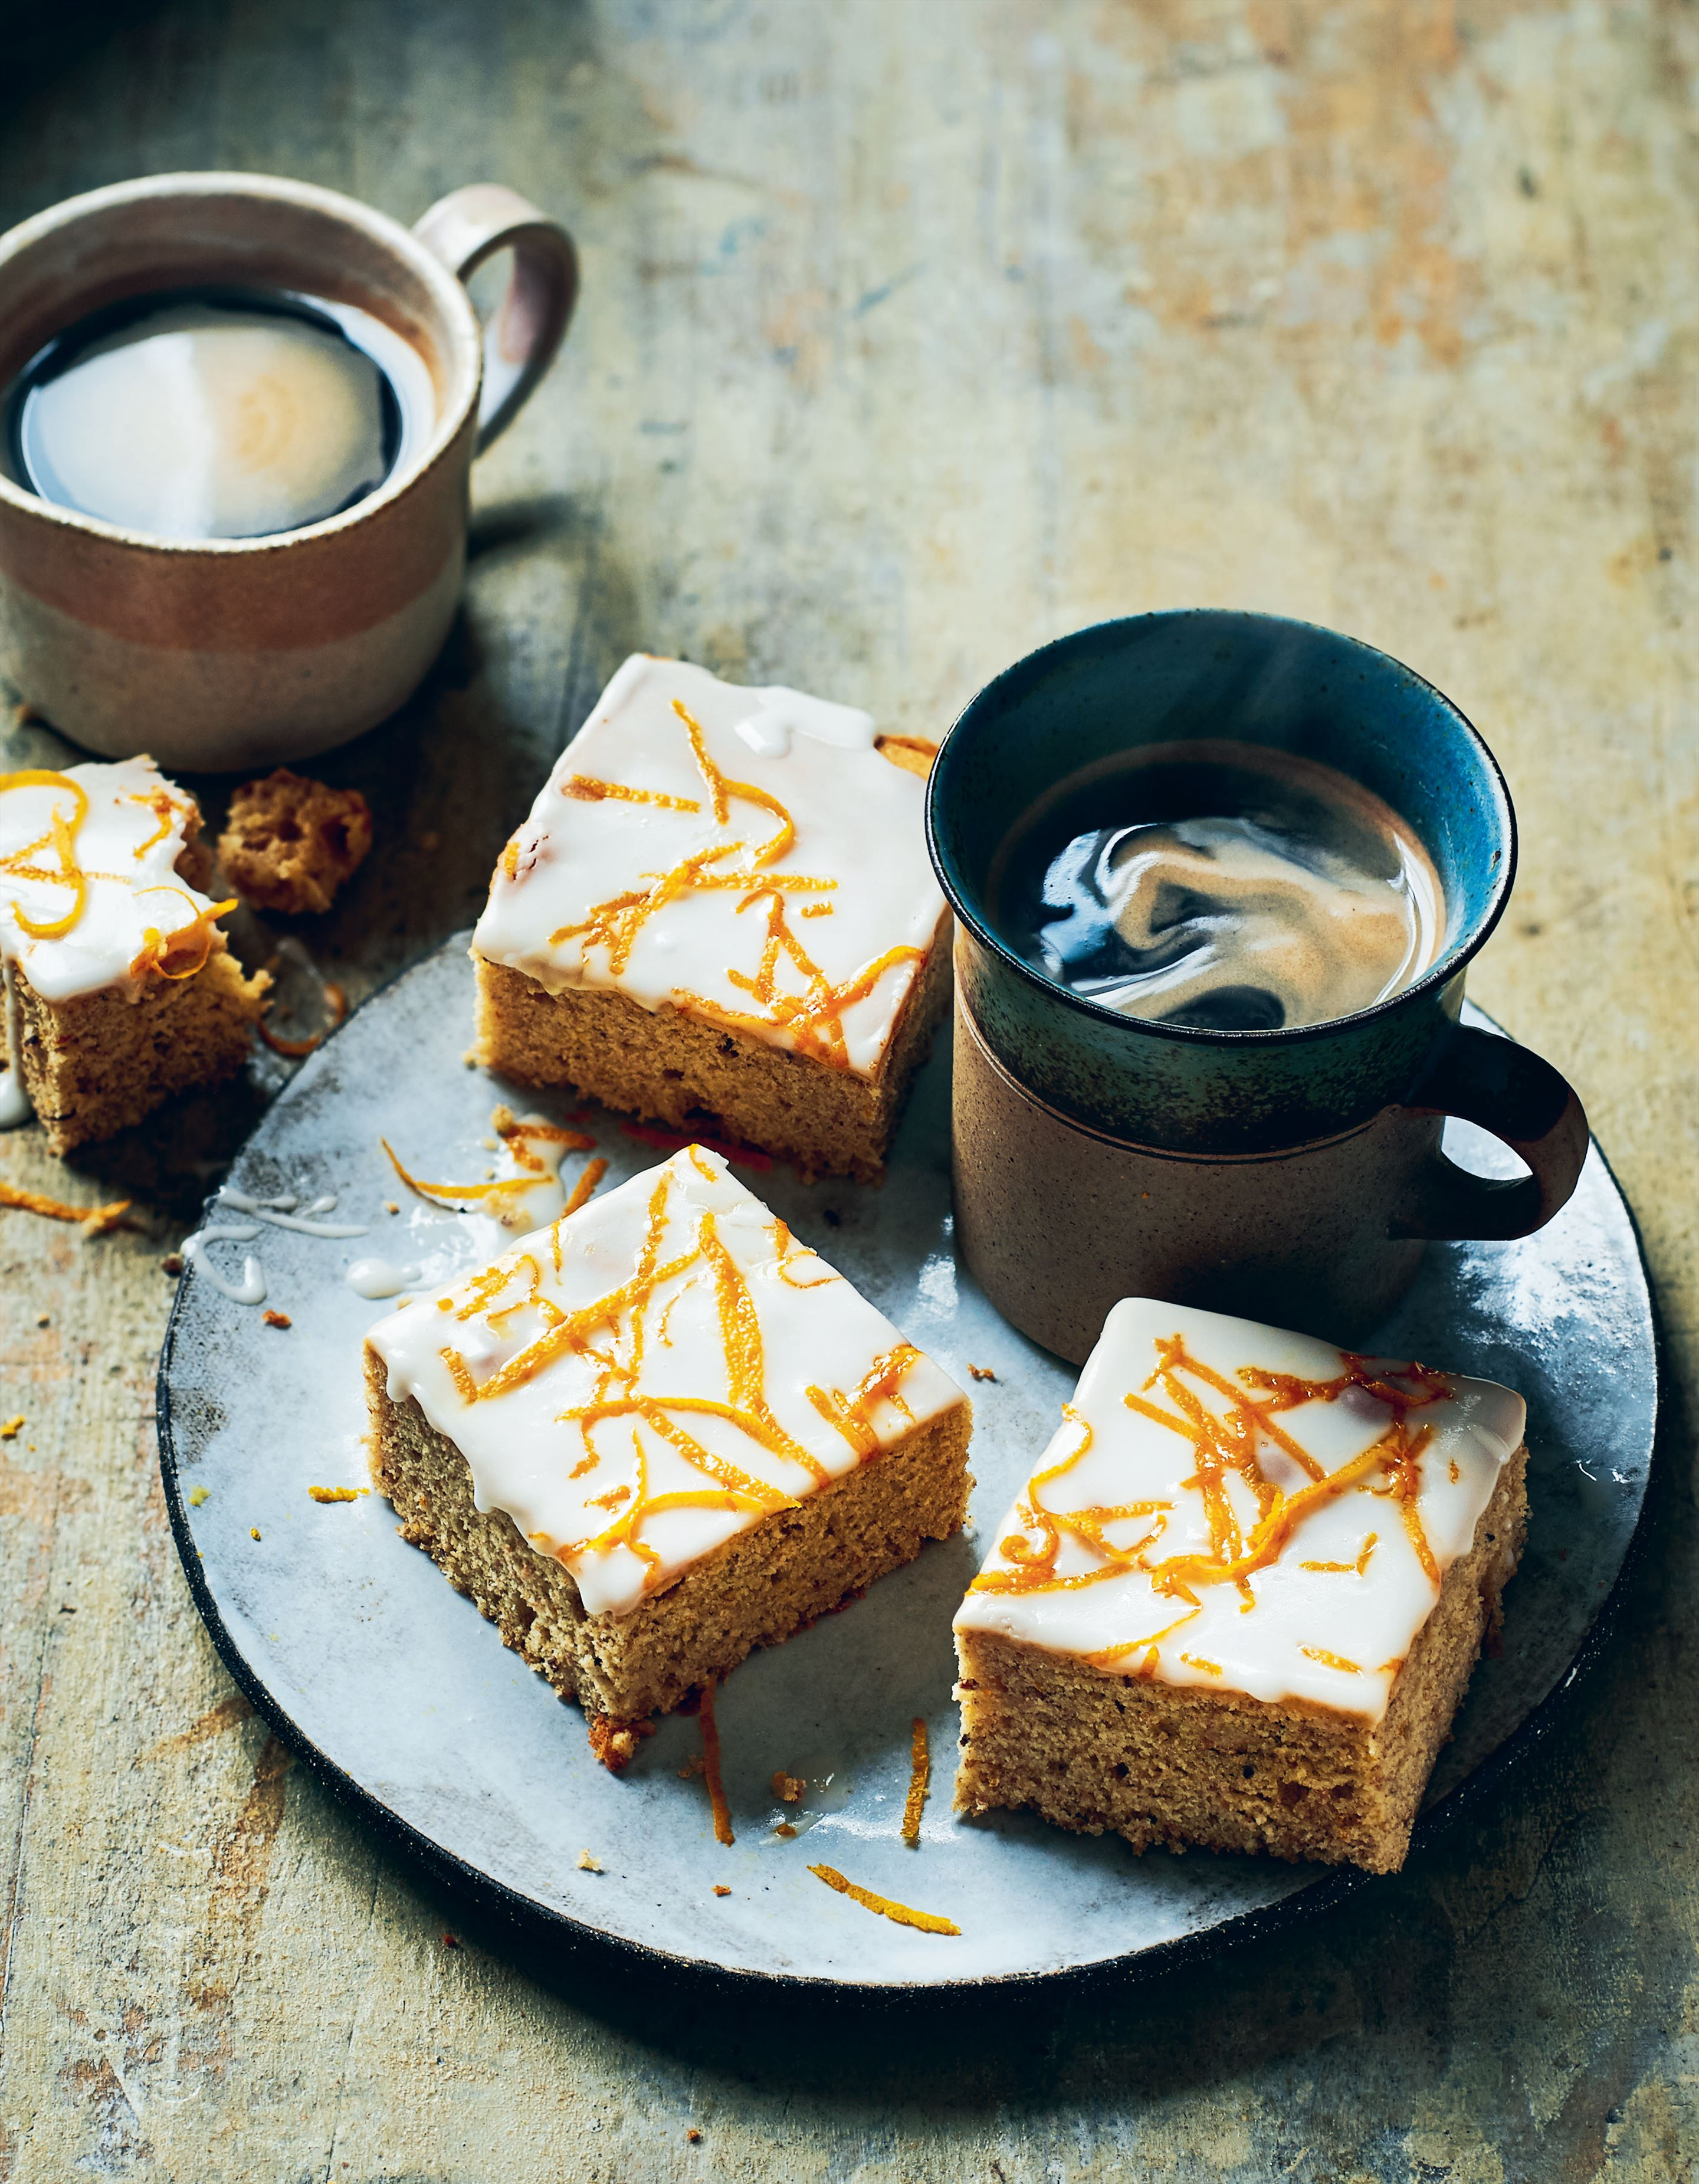 Orange and caraway slices with orange blossom glaze